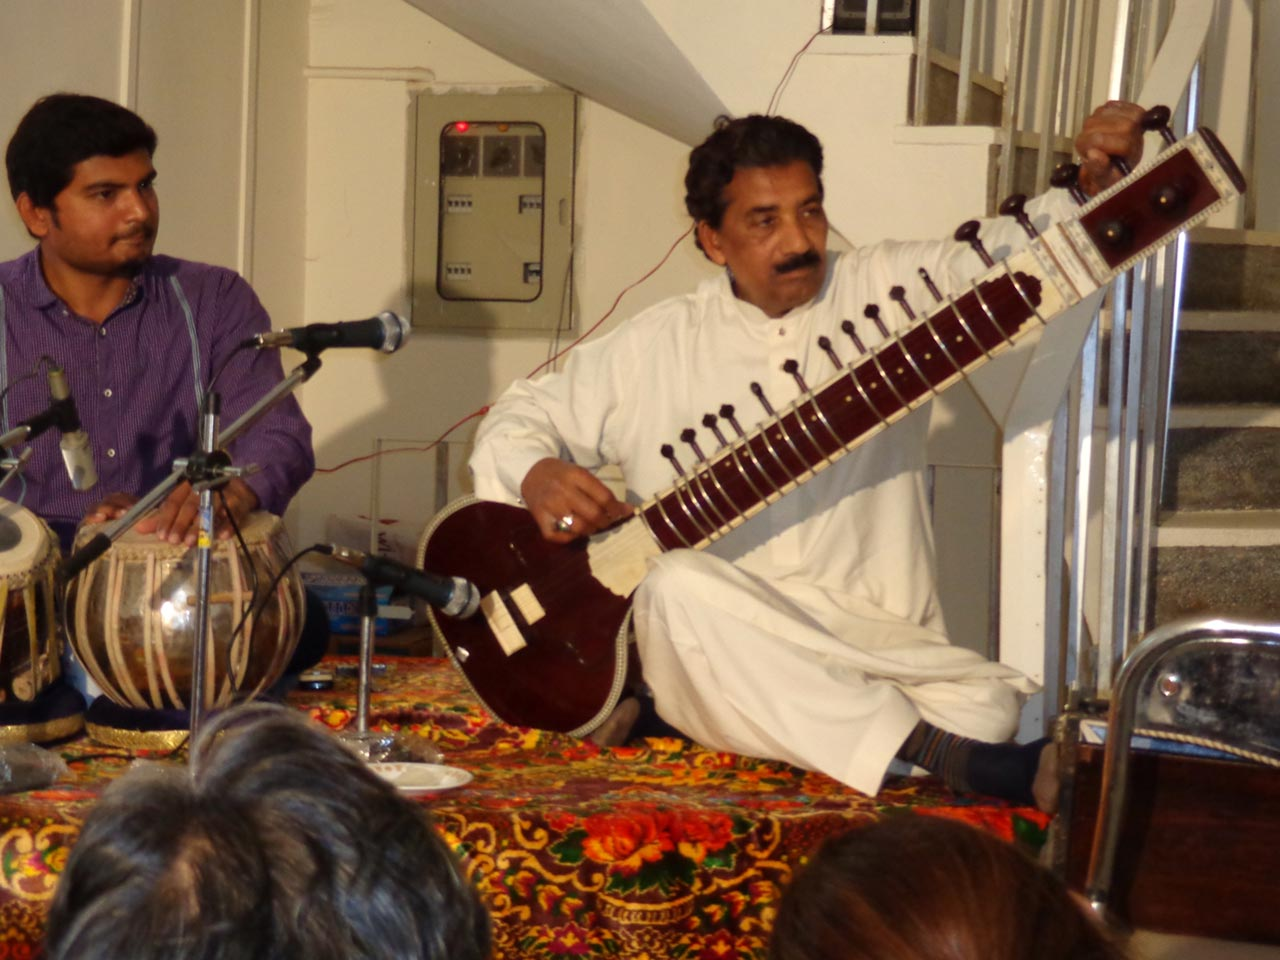 Ustad Saleem Khan, on Sitar, came from Lahore to attend the musical party